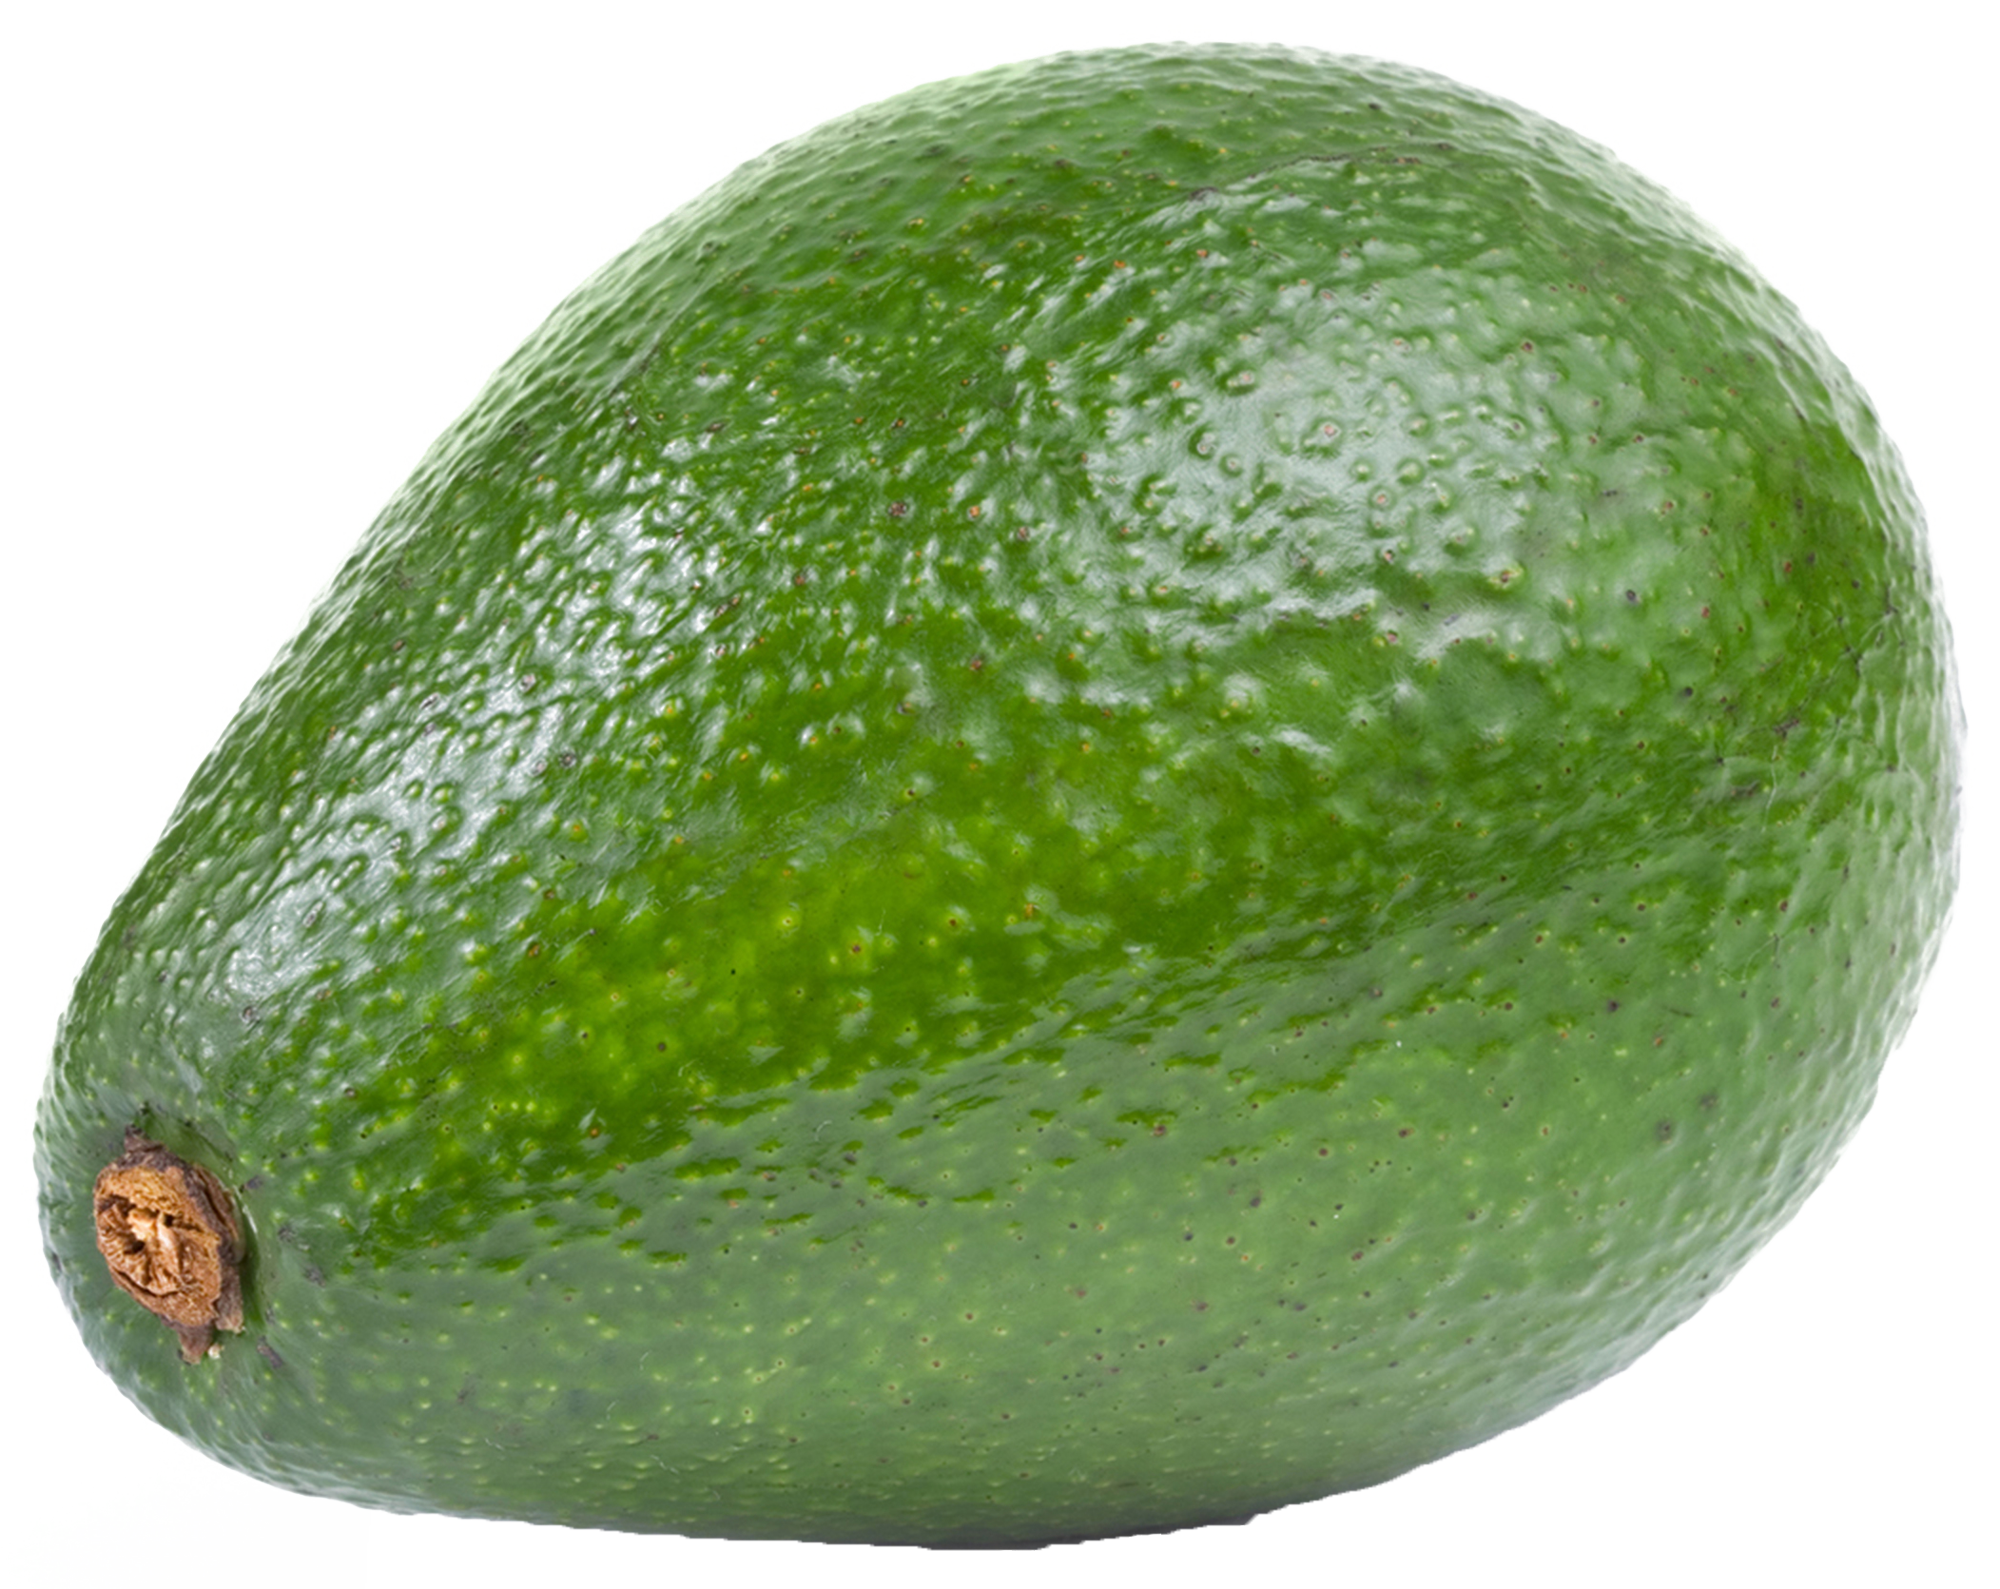 Pear clipart fruit seed. Large avocado png gallery